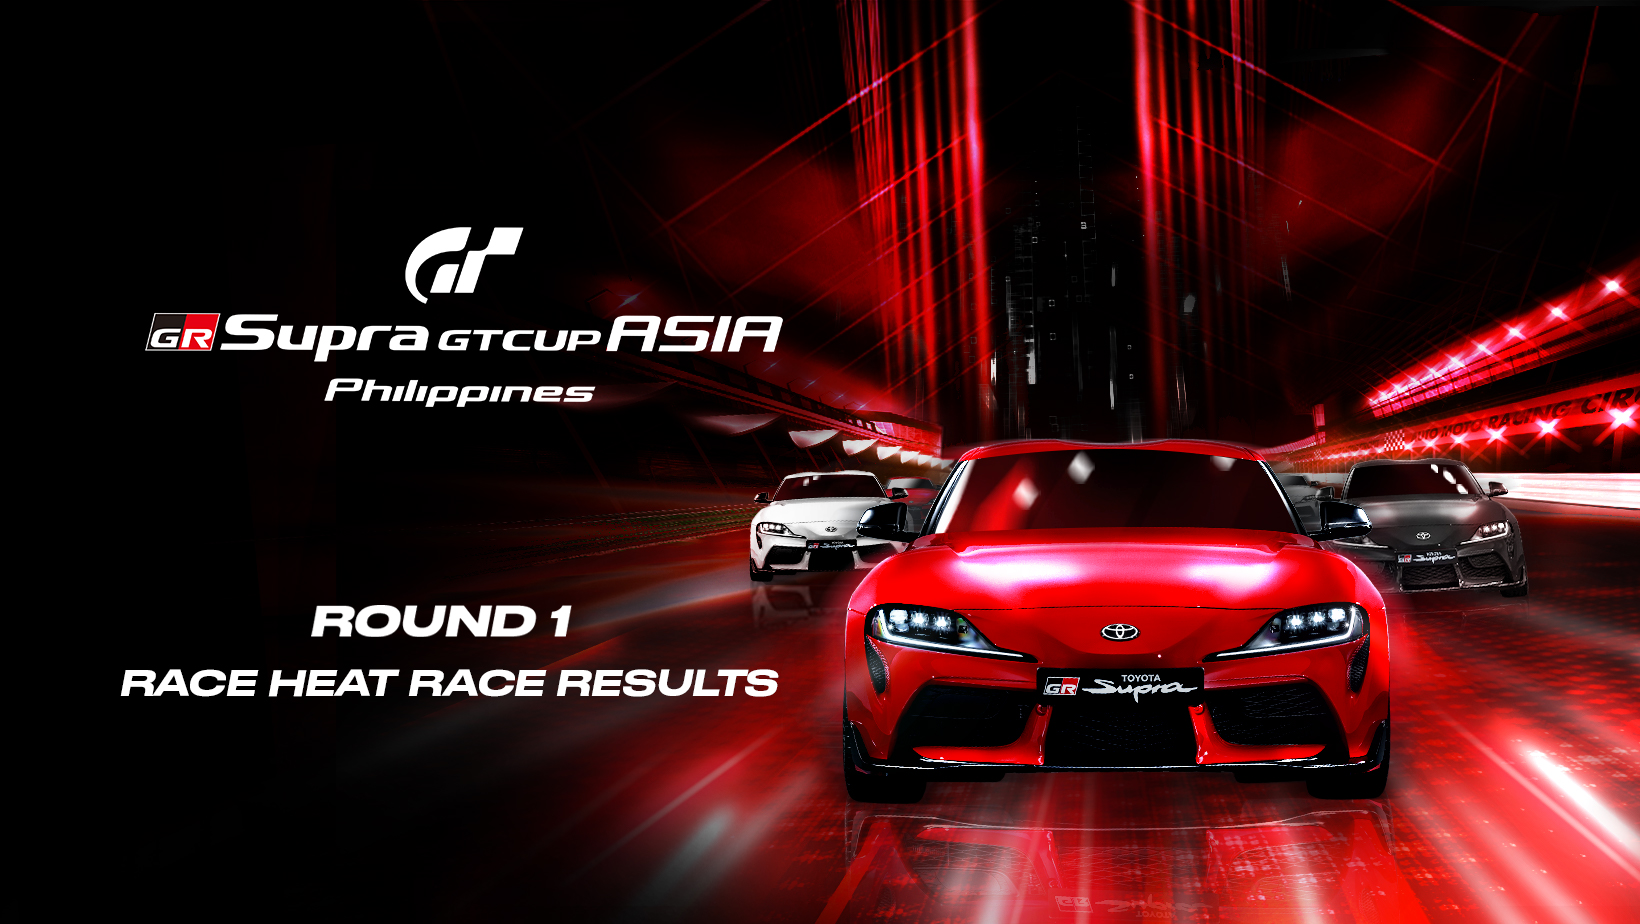 Toyota wraps up Round 1 of GR Supra GT Cup Asia Philippines